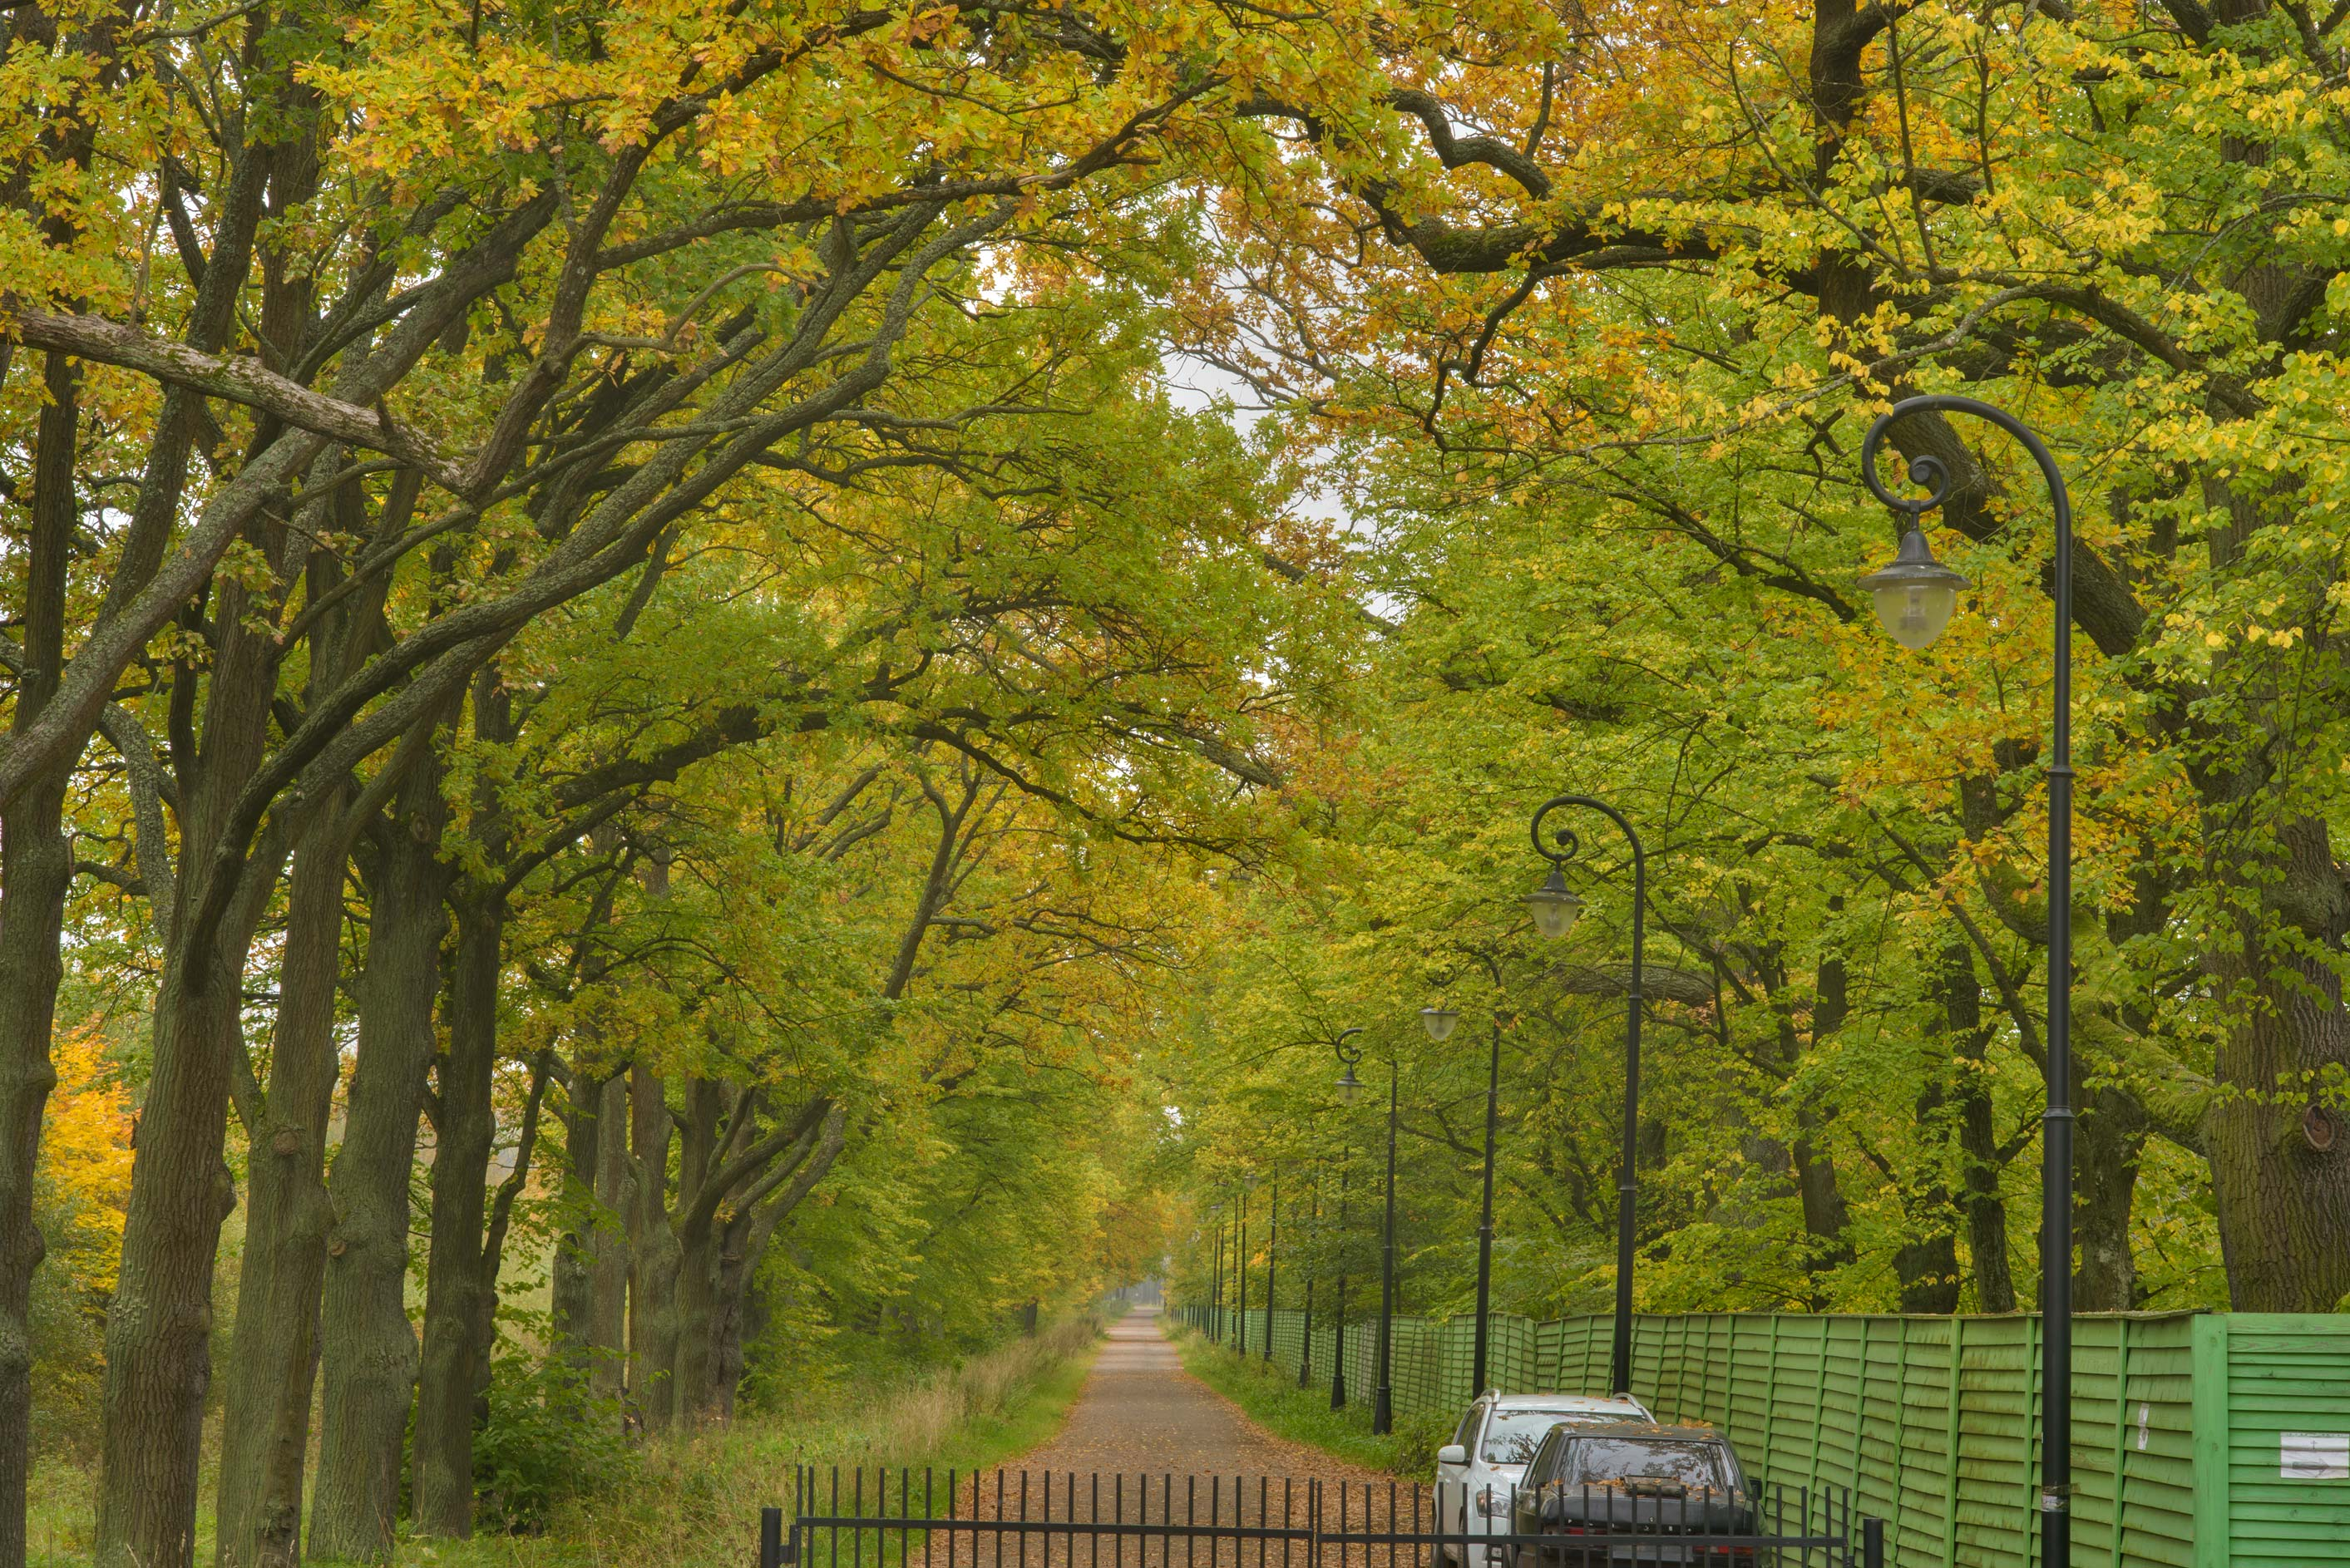 Lower Rd. near Alexandria Park. Peterhof, a suburb of St.Petersburg, Russia